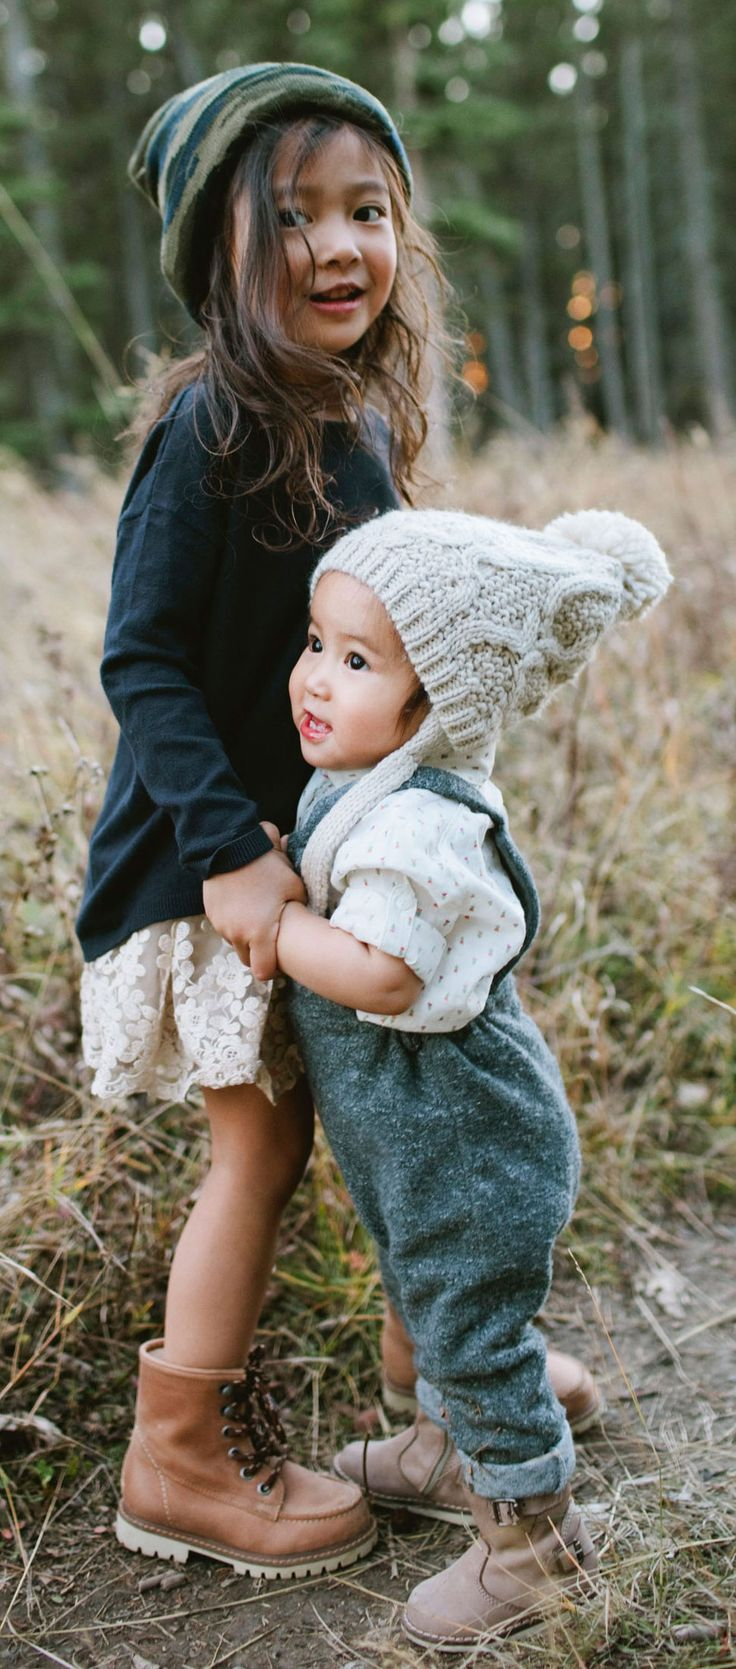 Start 'em young and they will always know proper style. Lace skirt, boots, adorable jumper, & hats galore...